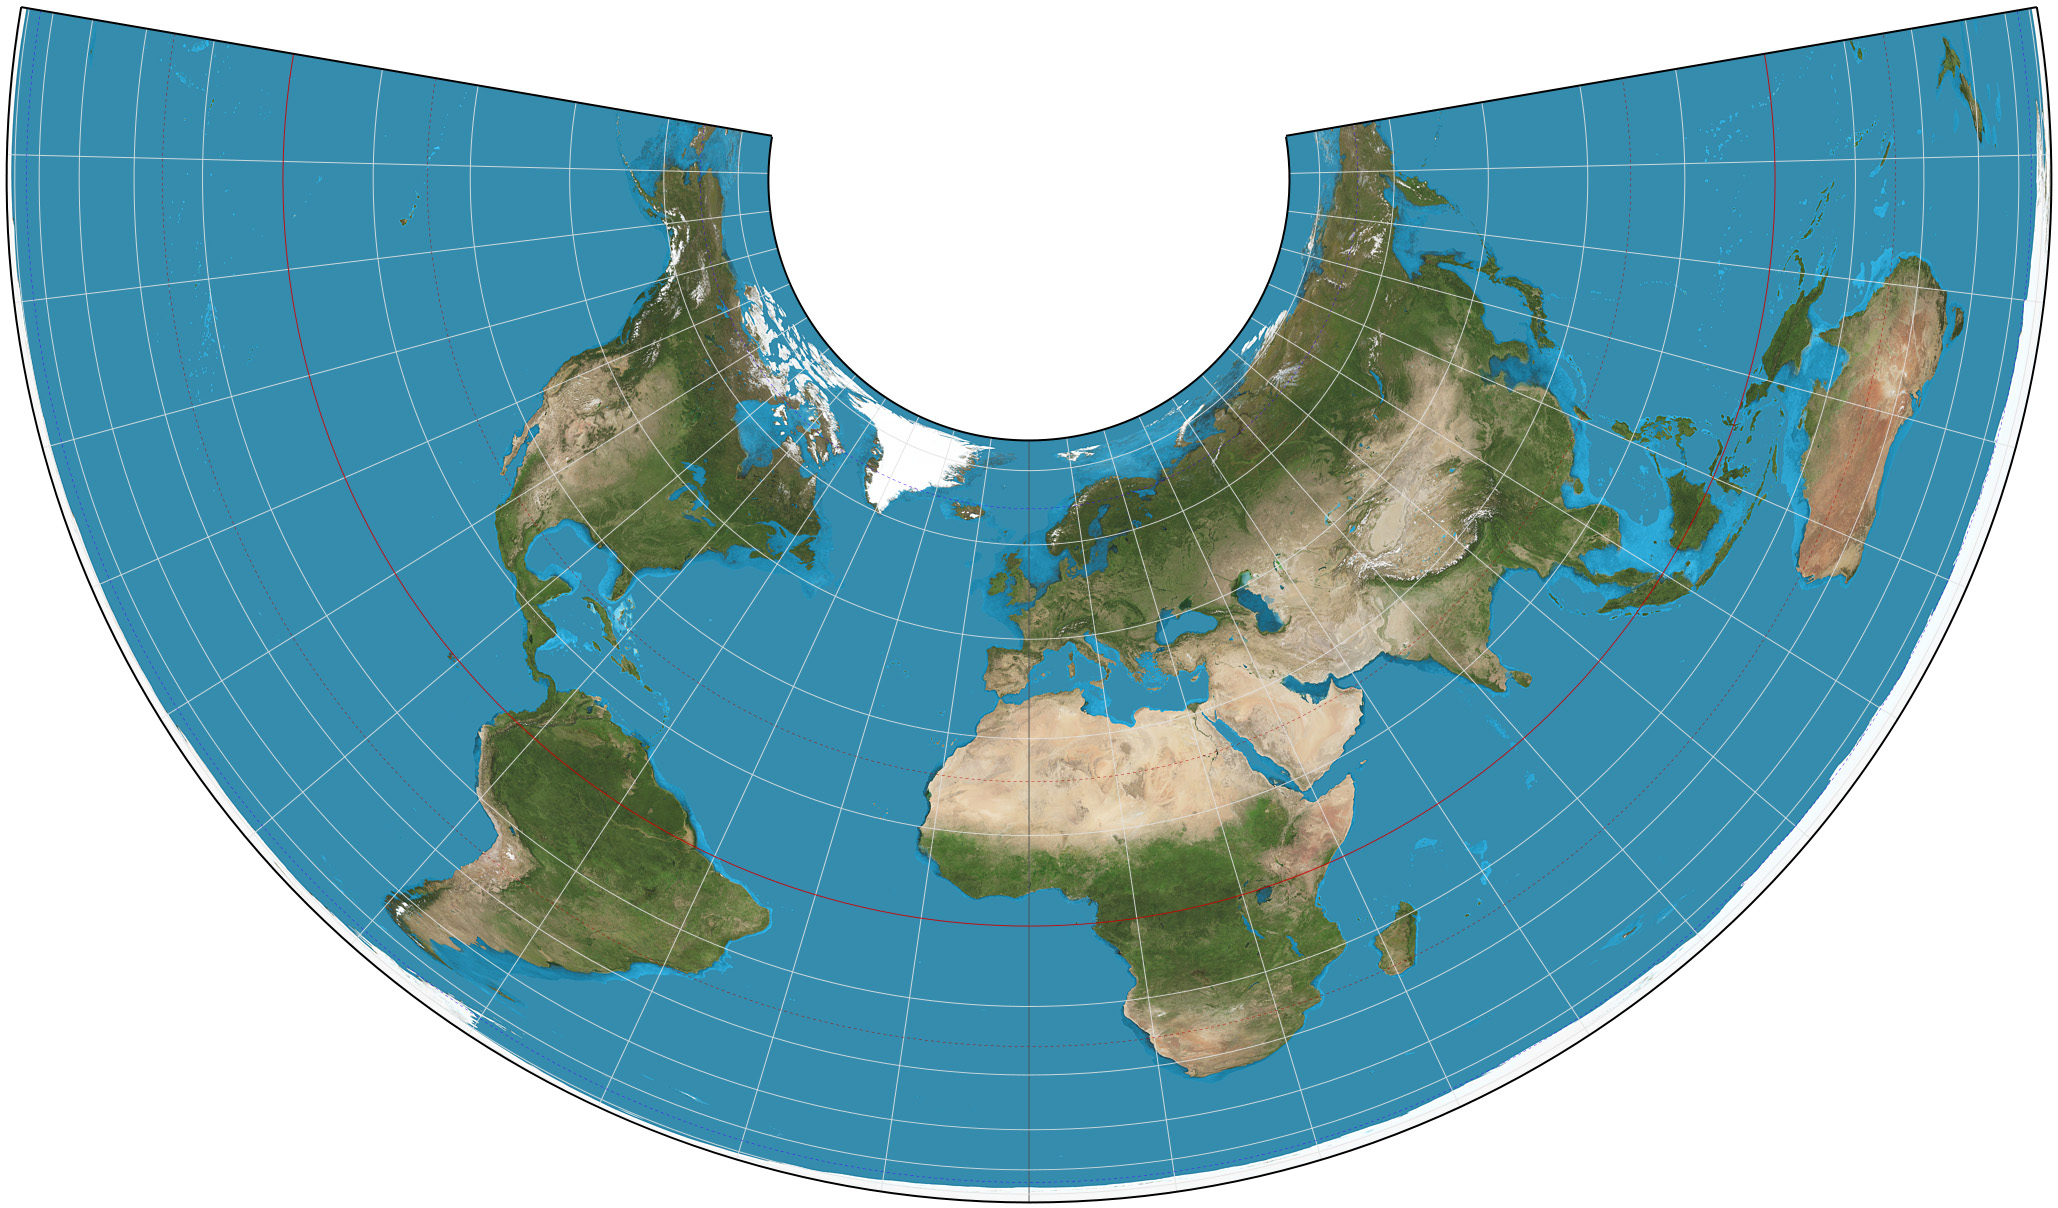 cartography and the three different ways of making maps cylindrical projection conic projection and  Etc • cartography is the study and practice of making maps and  the three different cylindrical projection  of map projection ie cylindrical, conic.